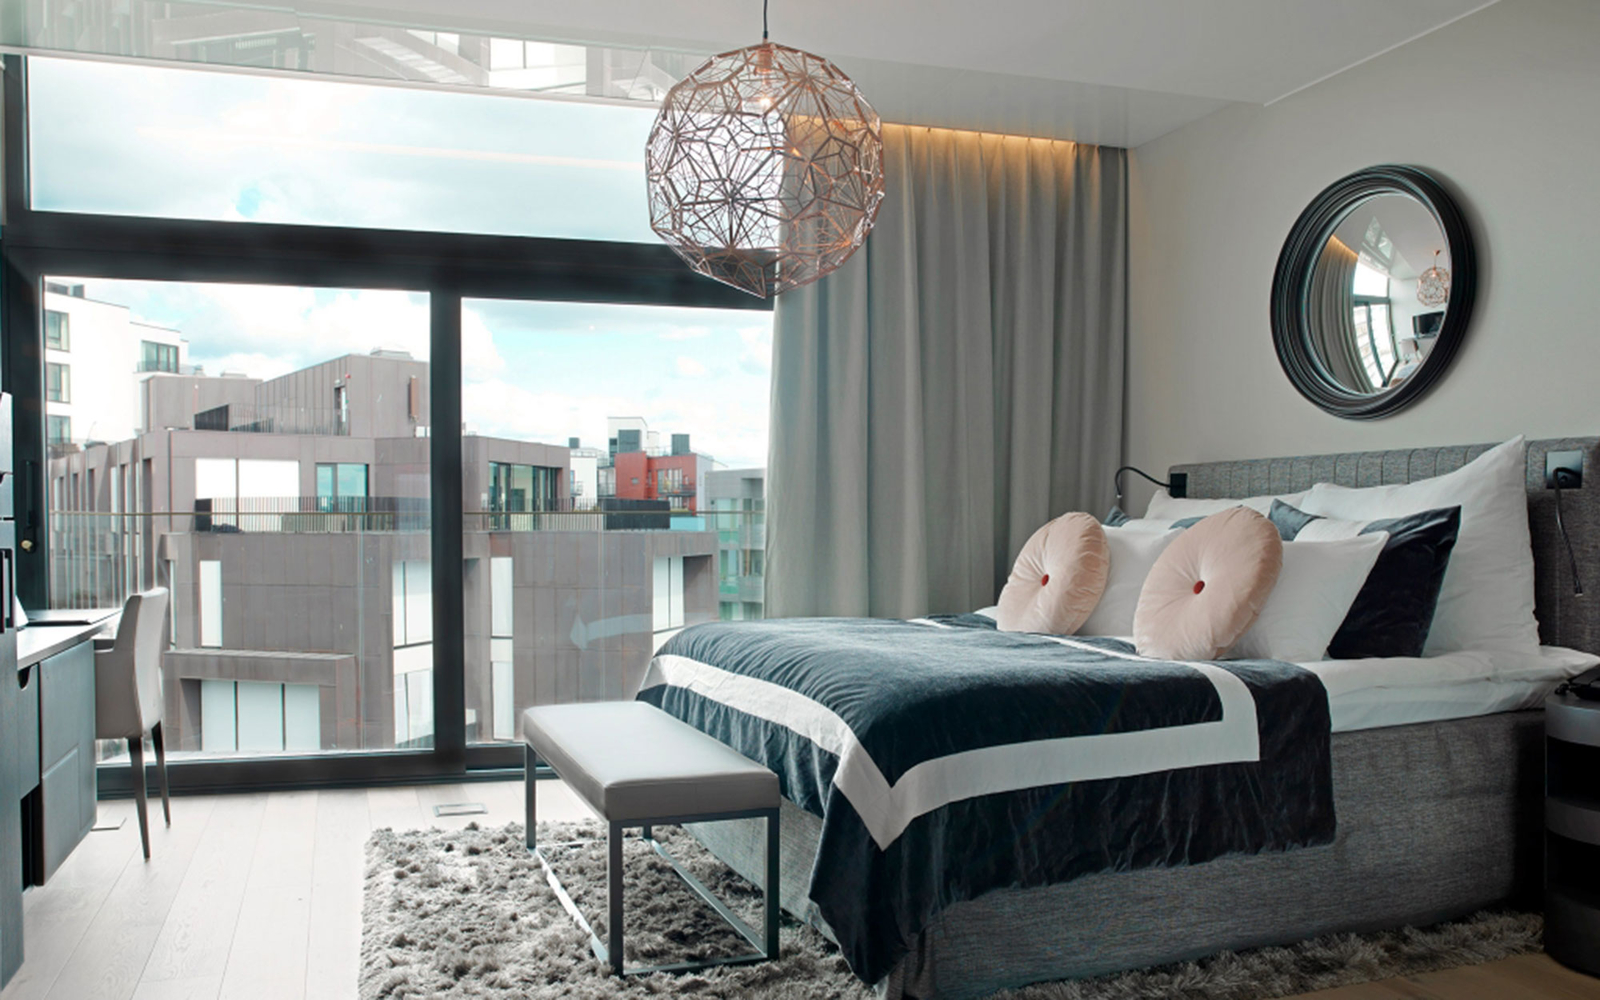 Stylish hotels in scandinavia travel leisure for Design hotel oslo